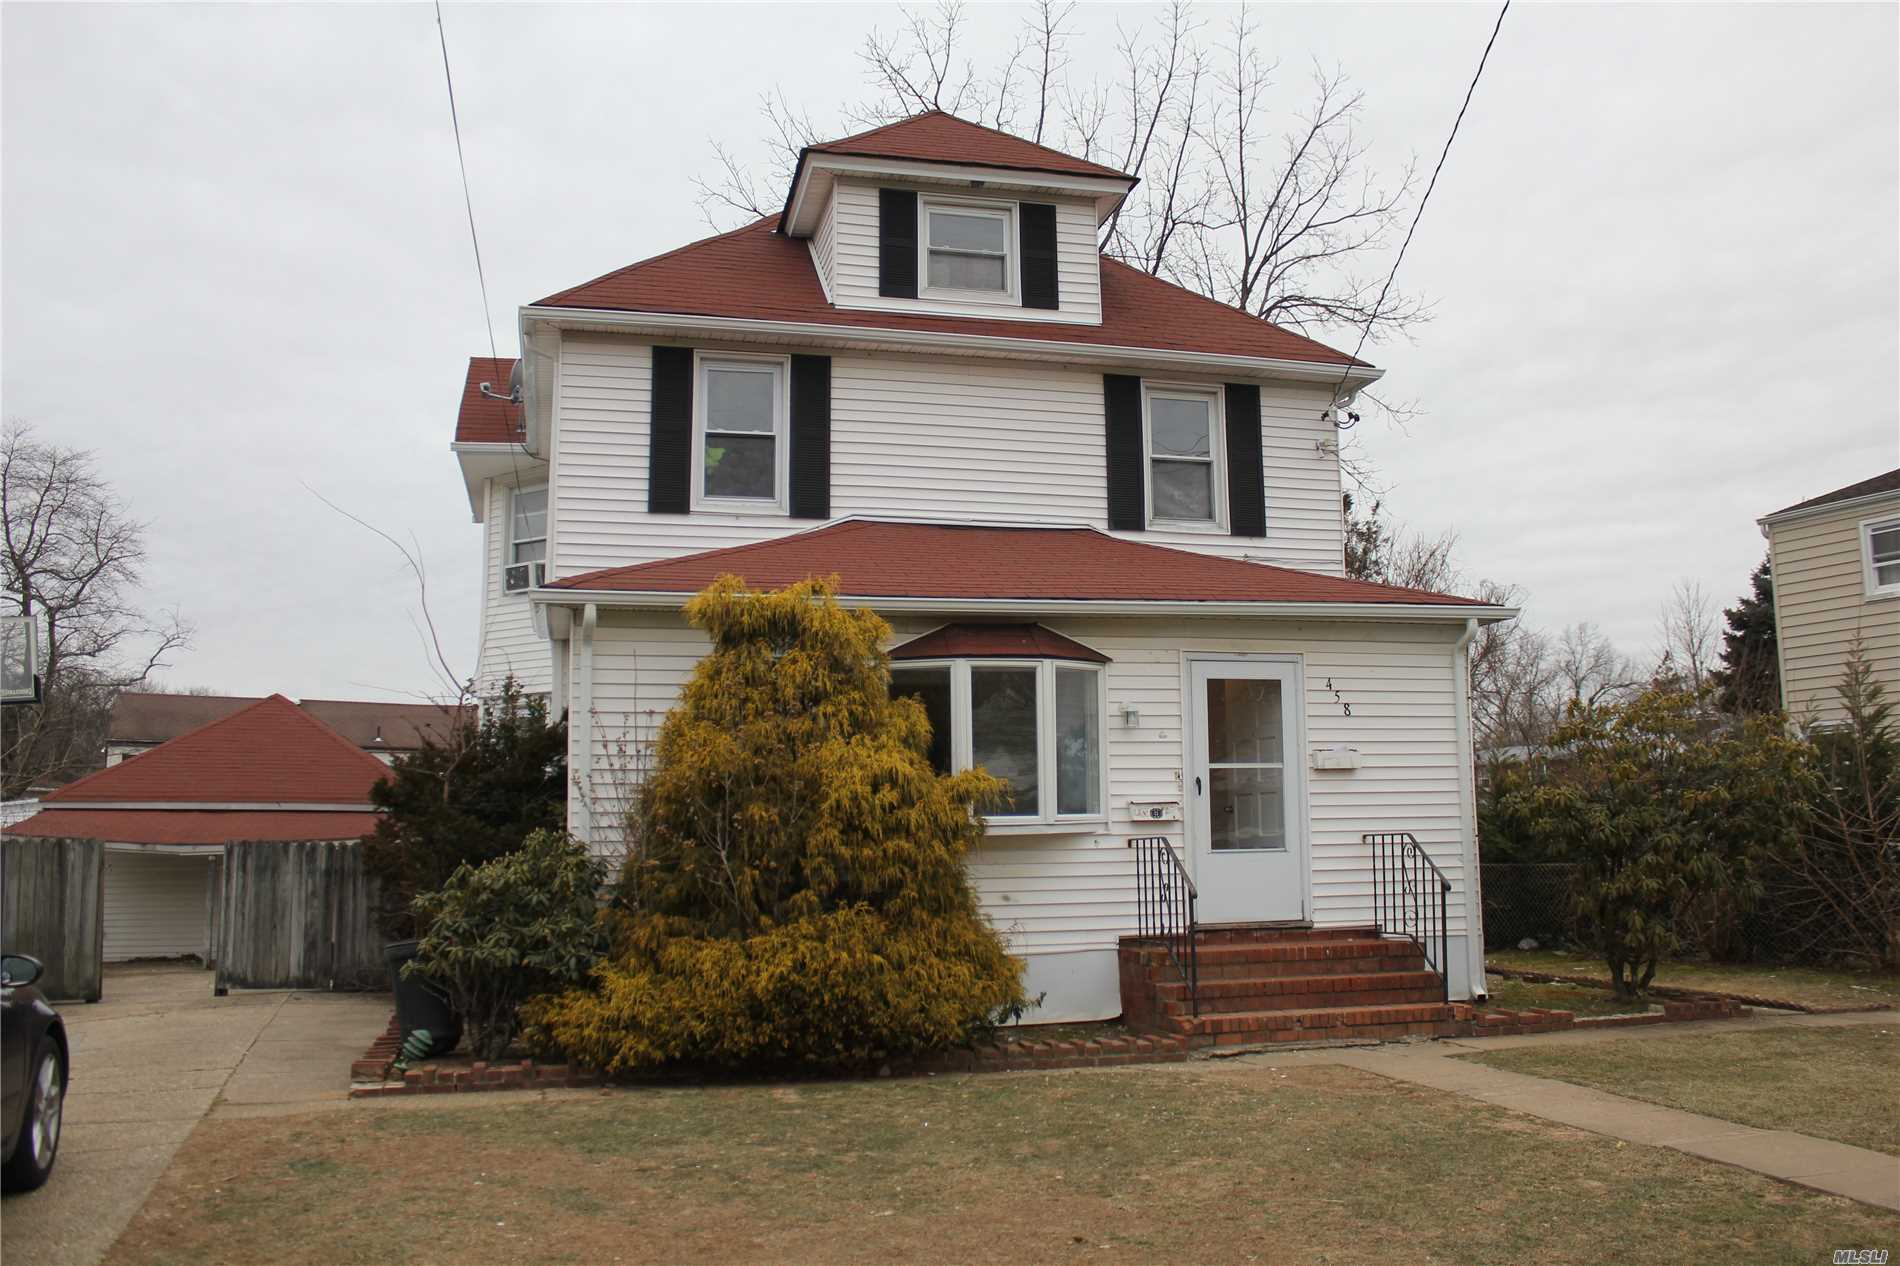 Apartment Was Redone With Fresh New Paint, New Windows, New Carpet, New Appliances, Including New Washer & Dryer In Basement Private Two Car Driveway Large Deck In Back. On A Nice Quit Street Close To All.